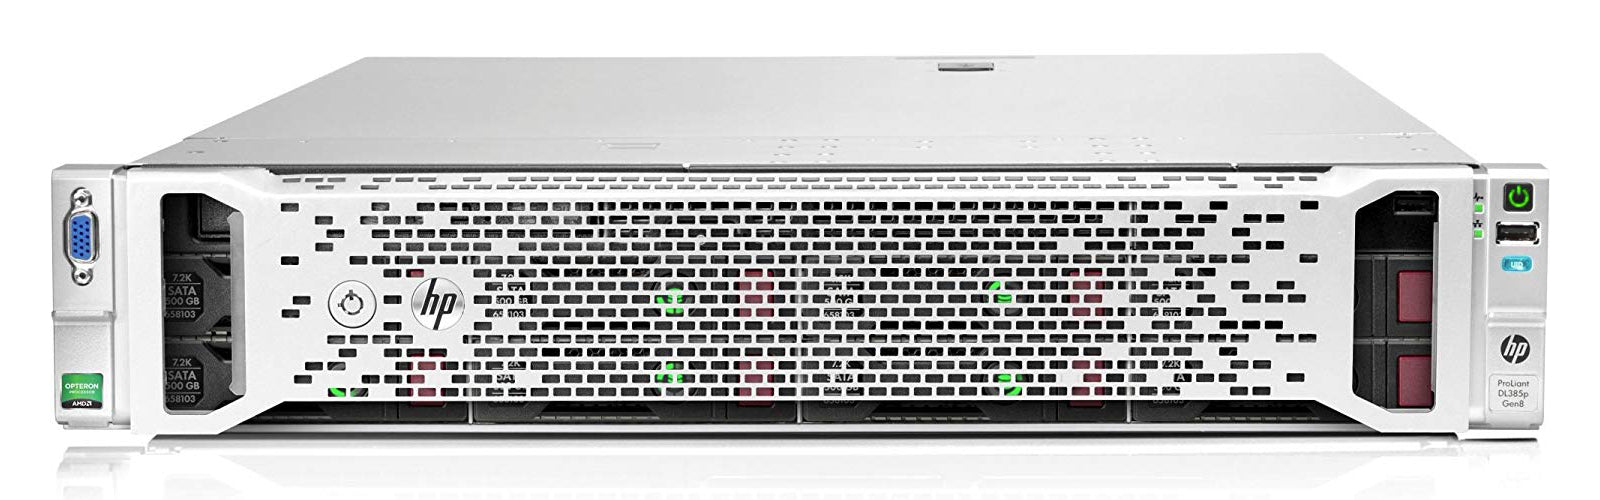 Refurbished HPE ProLiant DL385p Gen8 Configure to Order Server